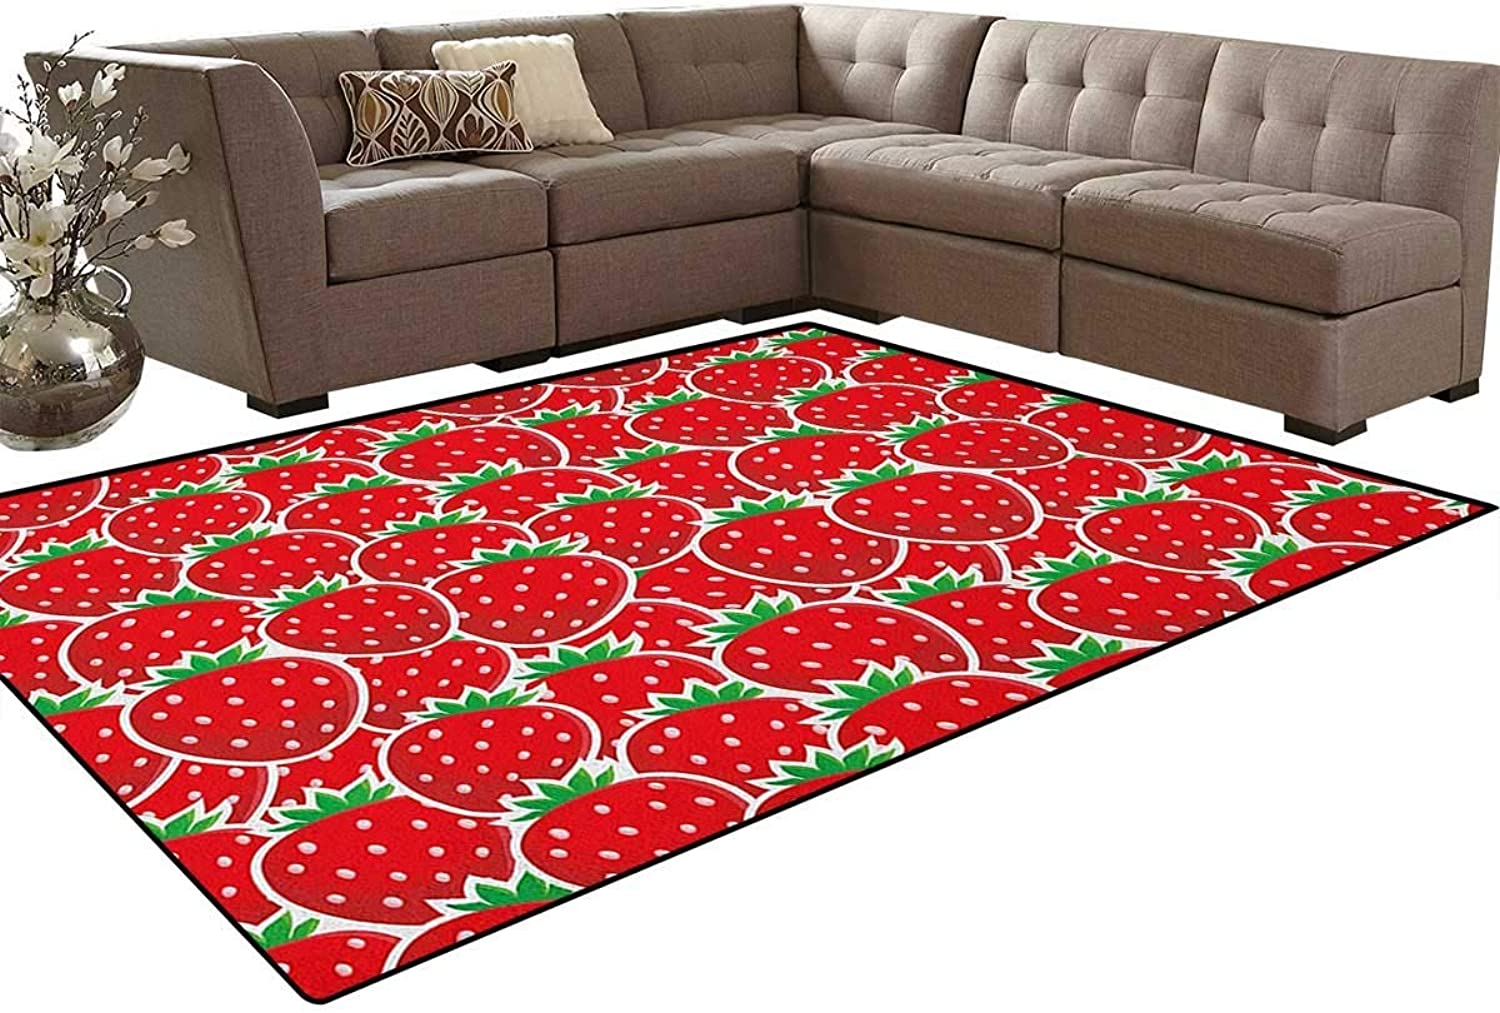 Strawberry Themed Botany Seeds Yummy Food Organic Growth Diet Health Print Floor Mat Rug Indoor Front Door Kitchen and Living Room Bedroom Mats Rubber Non Slip